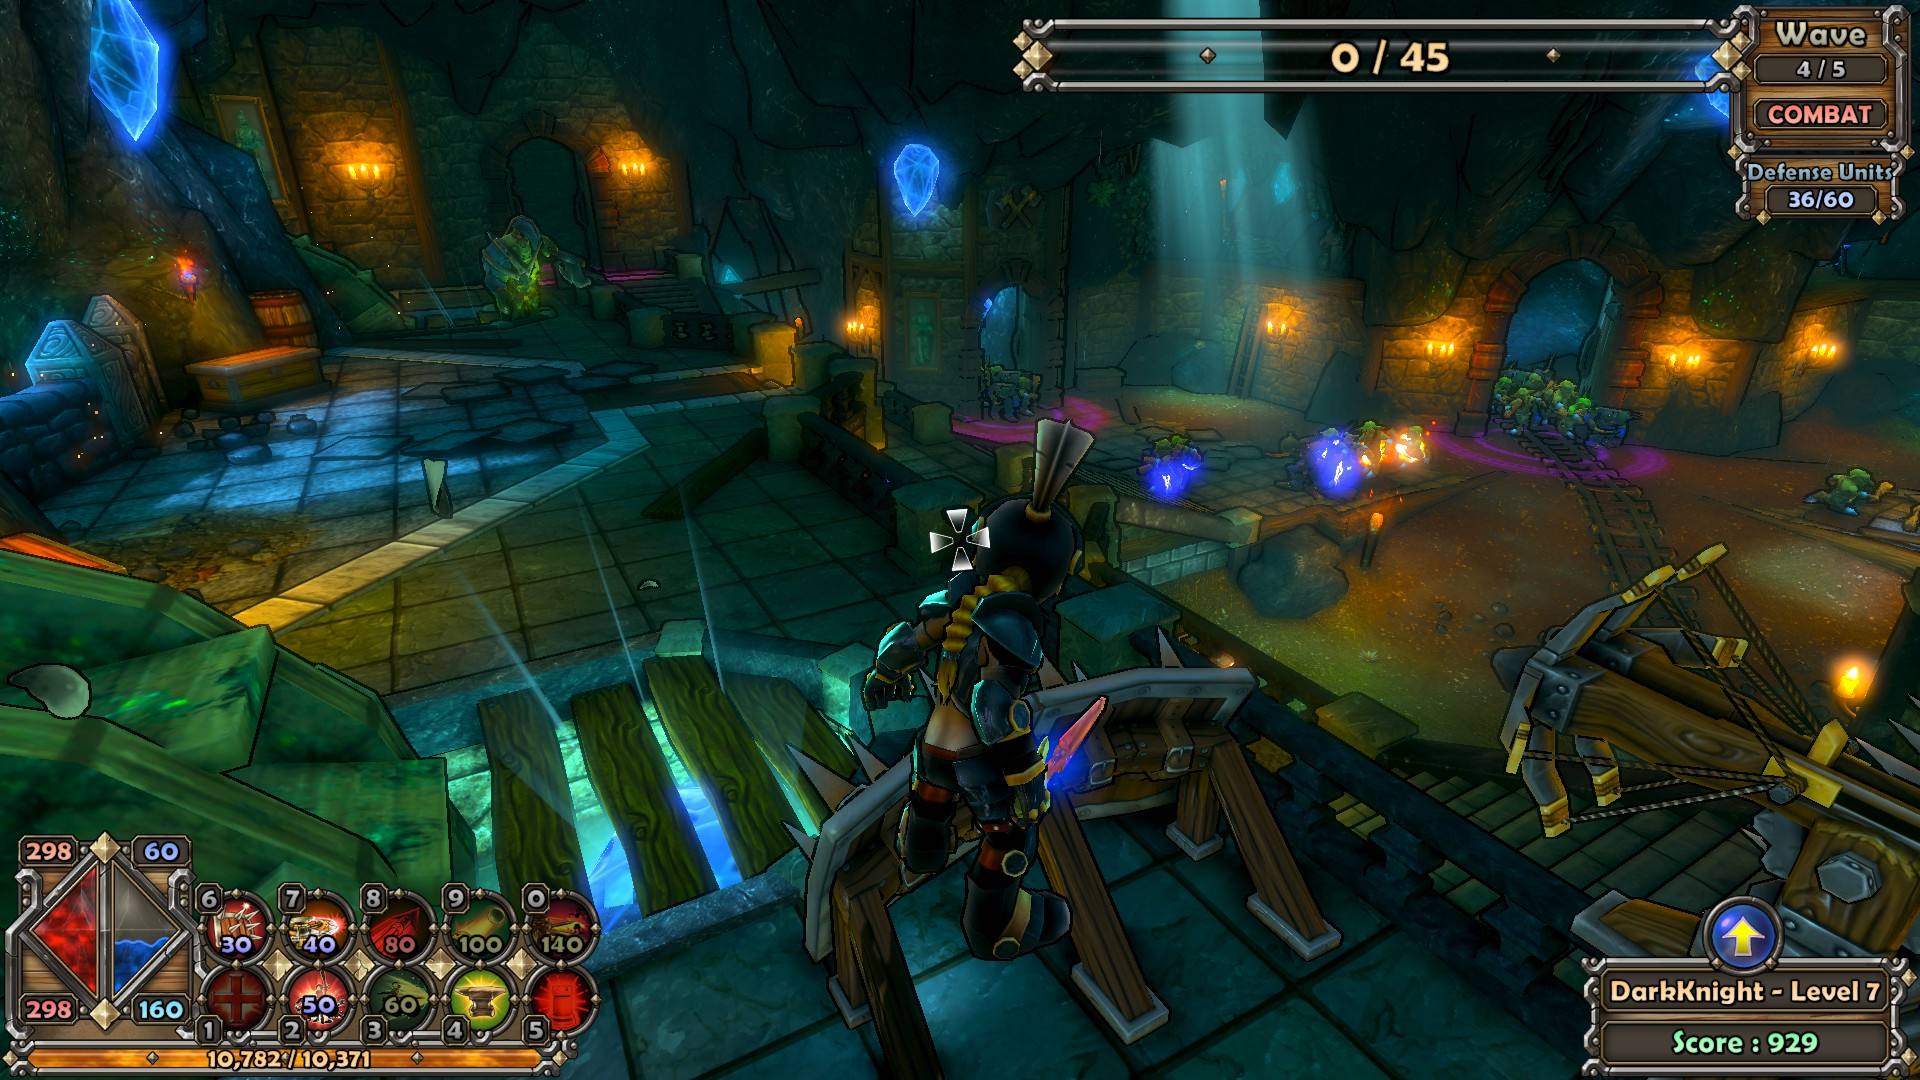 dungeon defenders failed to create game